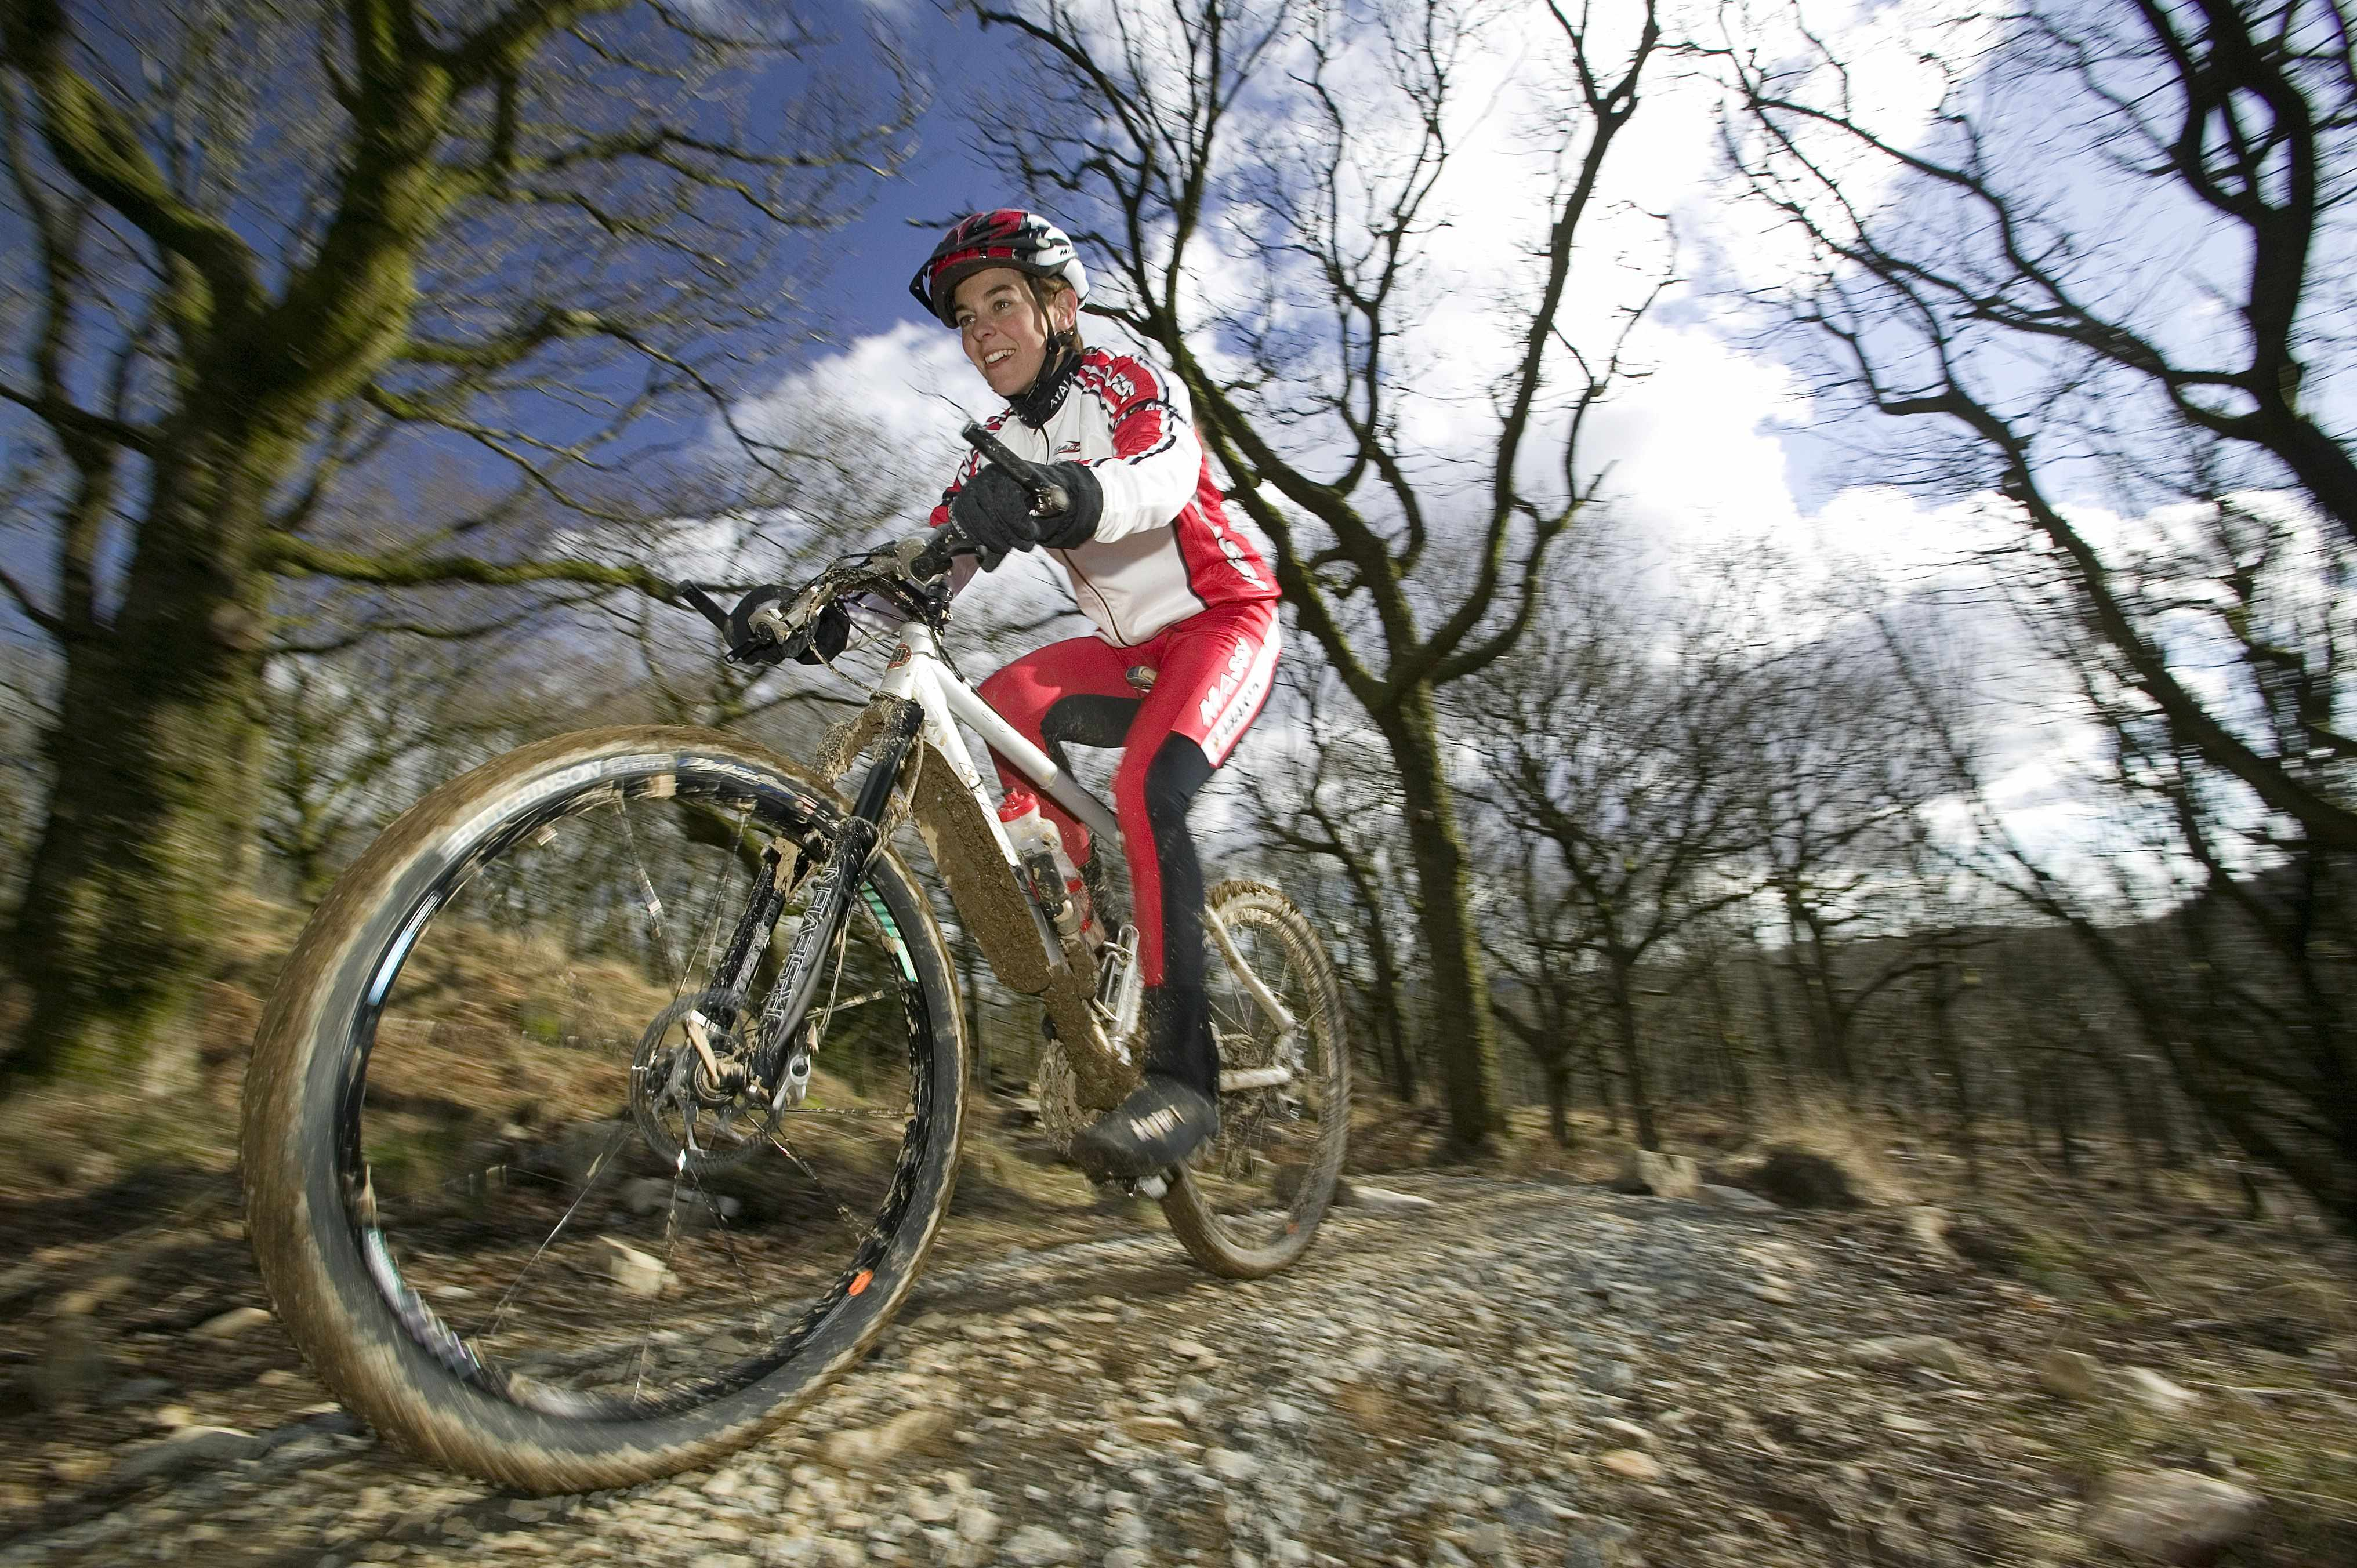 The Whinlatter trail follows the creation of a similar one in Grizedale